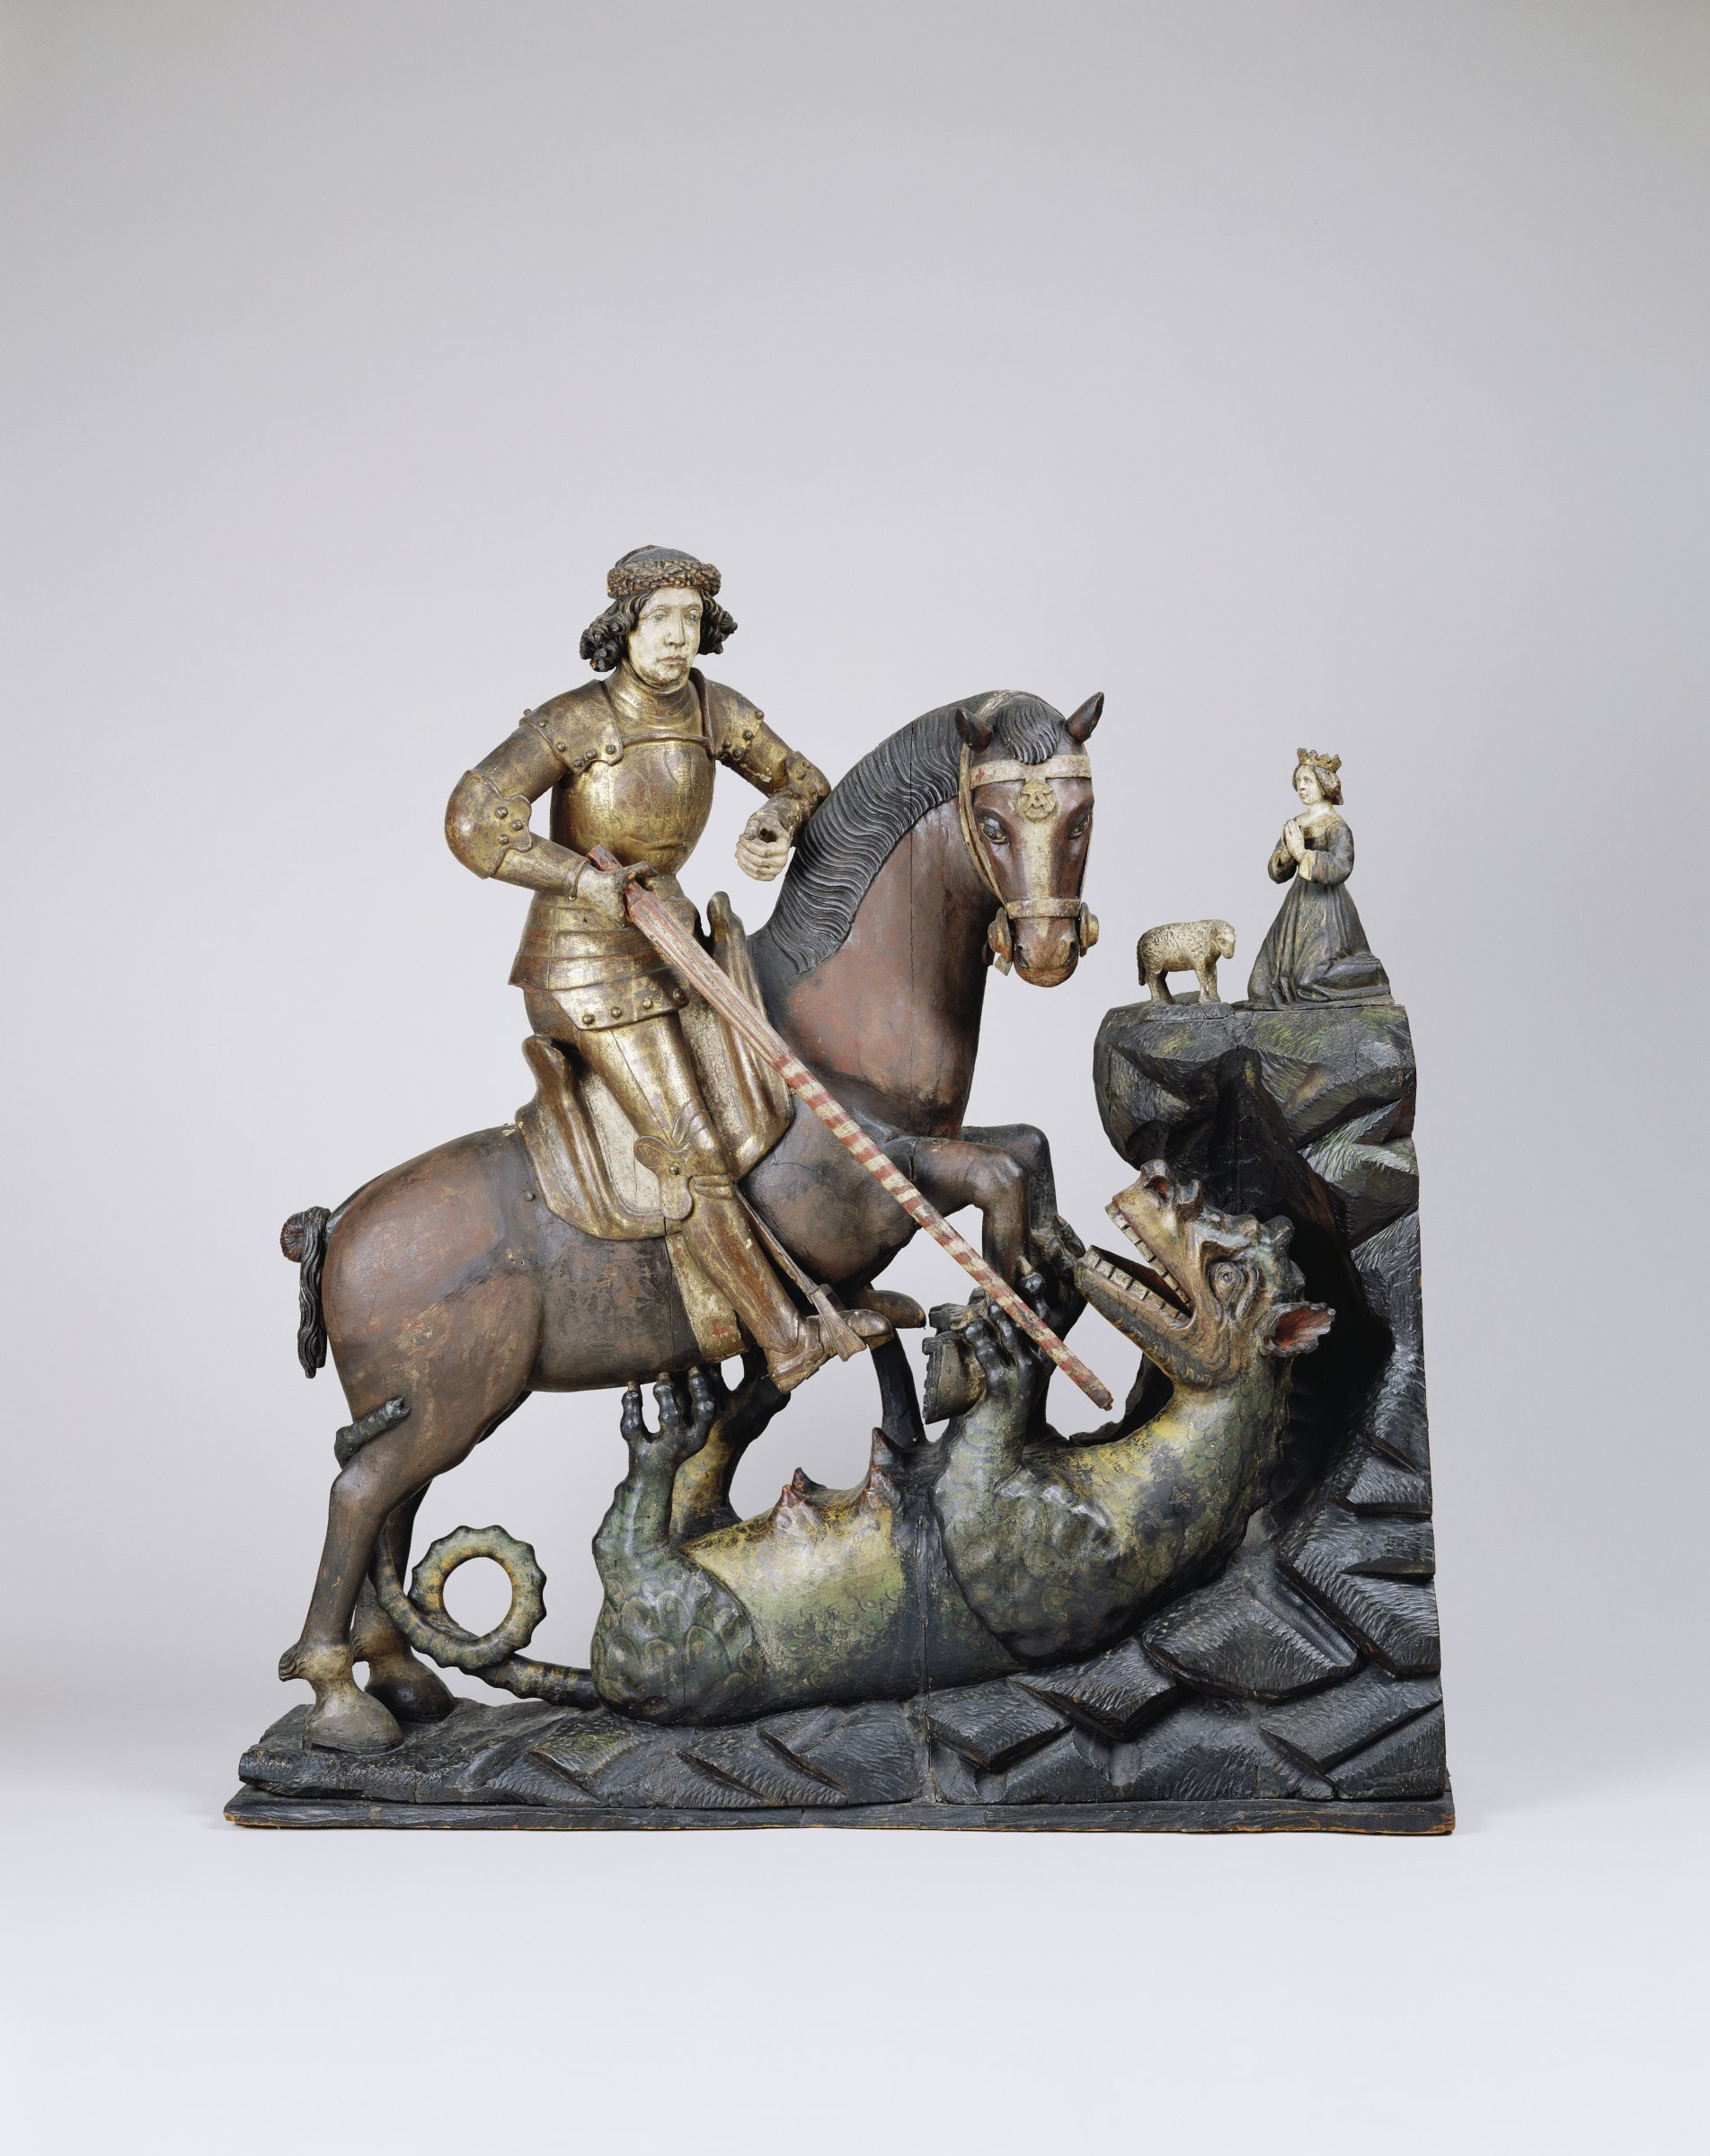 Saint George is riding a horse. The dragon is on its back under the horse. Saint George stabs the dragon with a long sword.